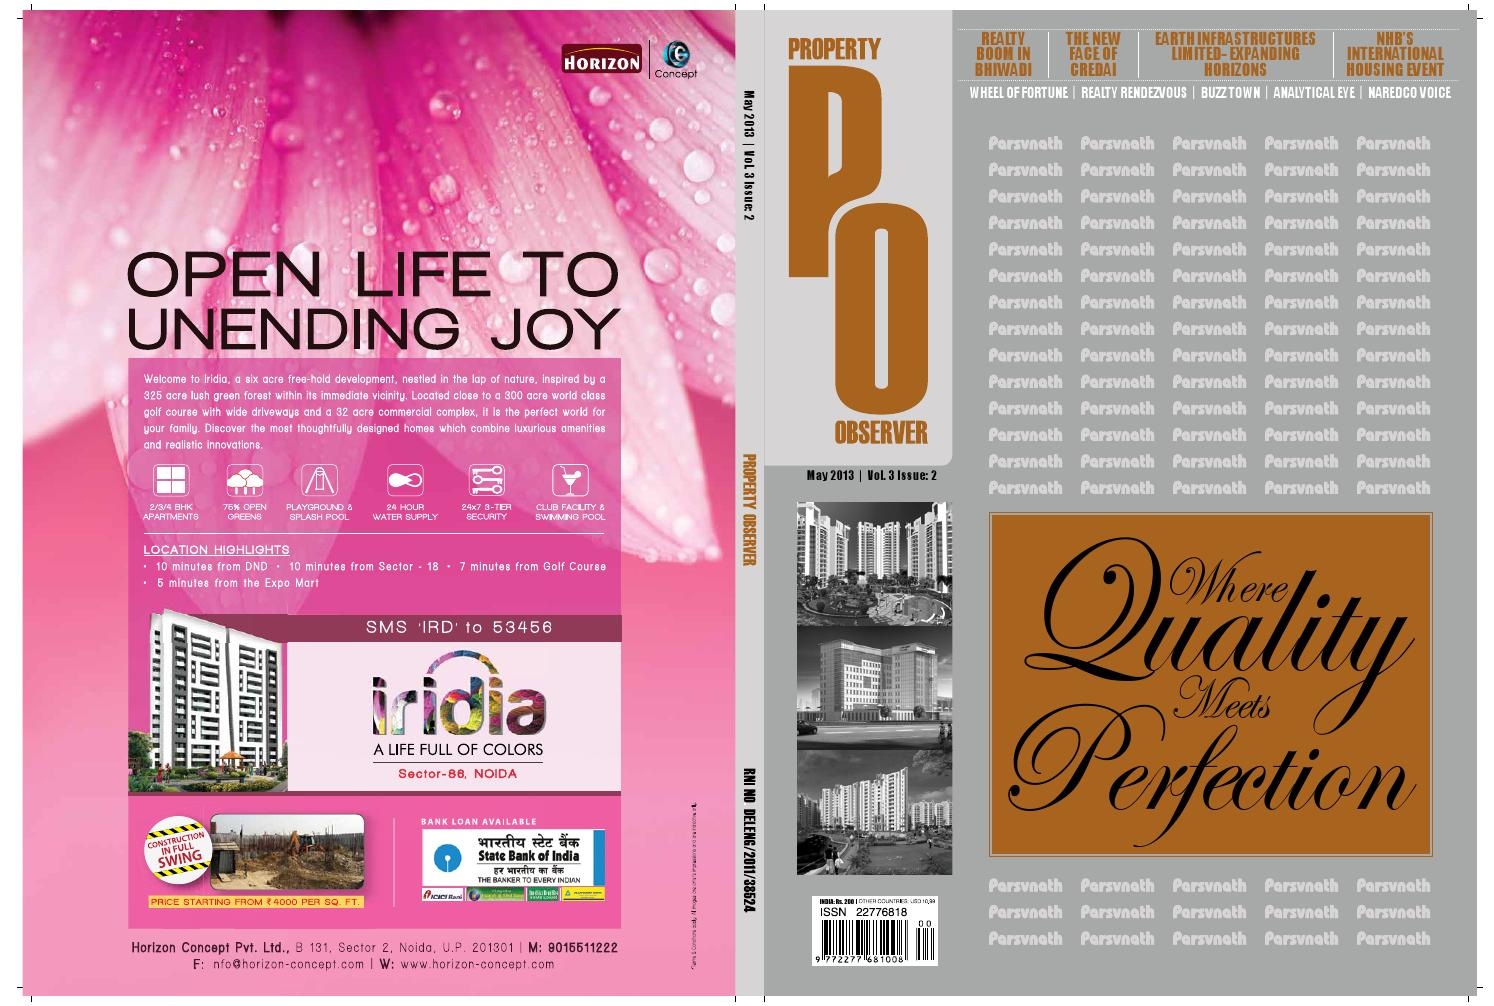 10657ddc2 Property Observer May 2013 by property observer - issuu